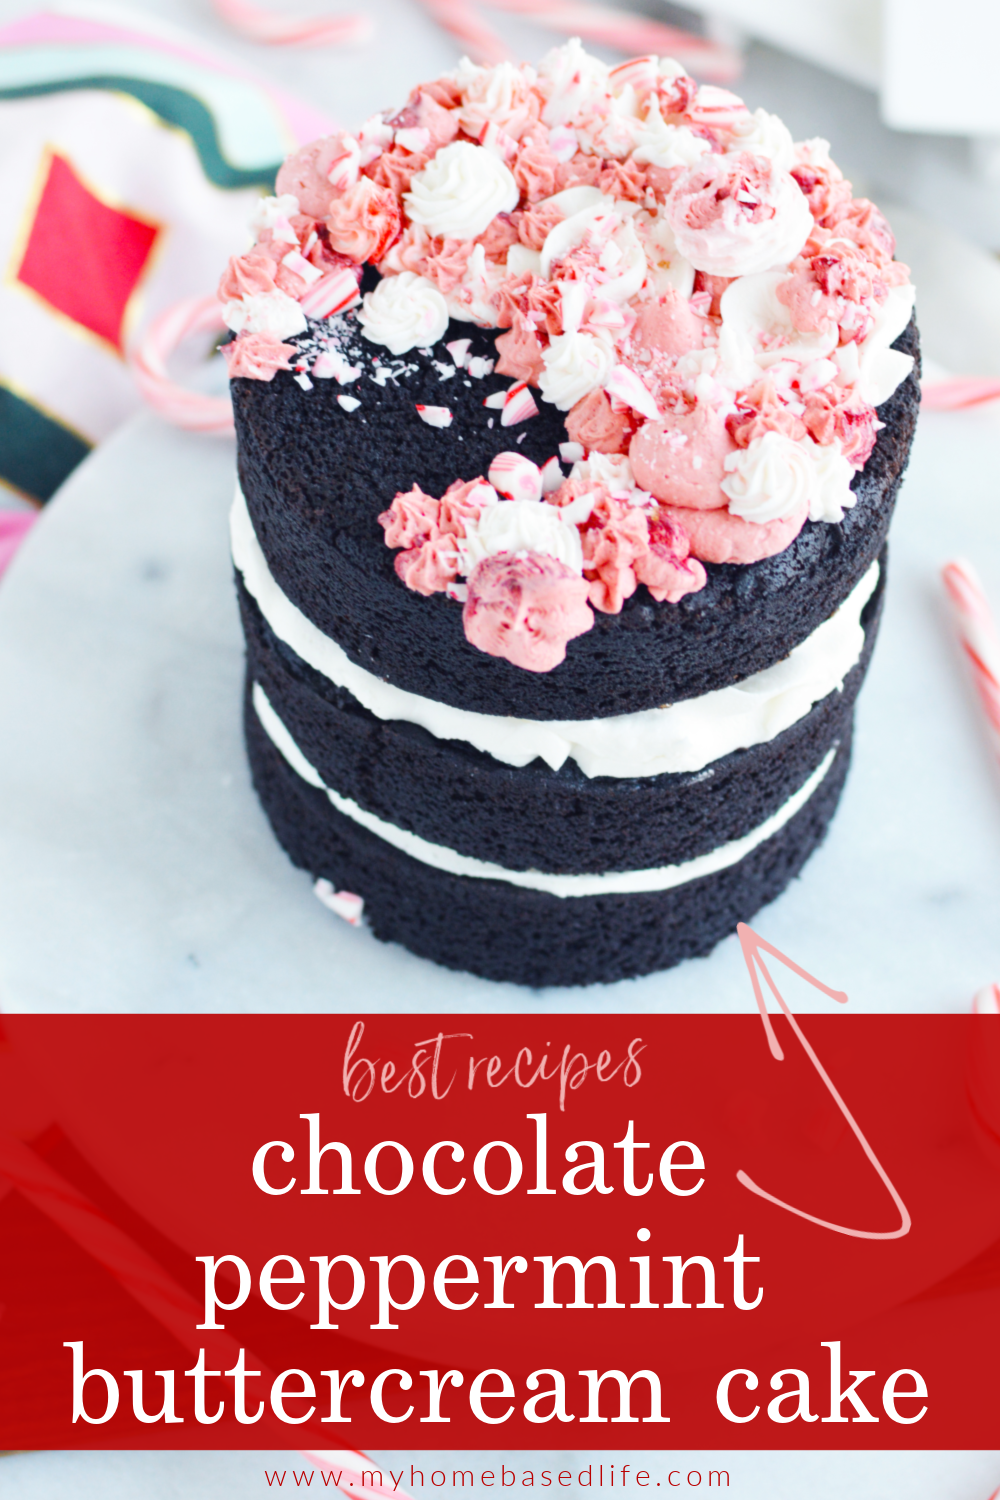 buttercream peppermint chocolate cake recipe